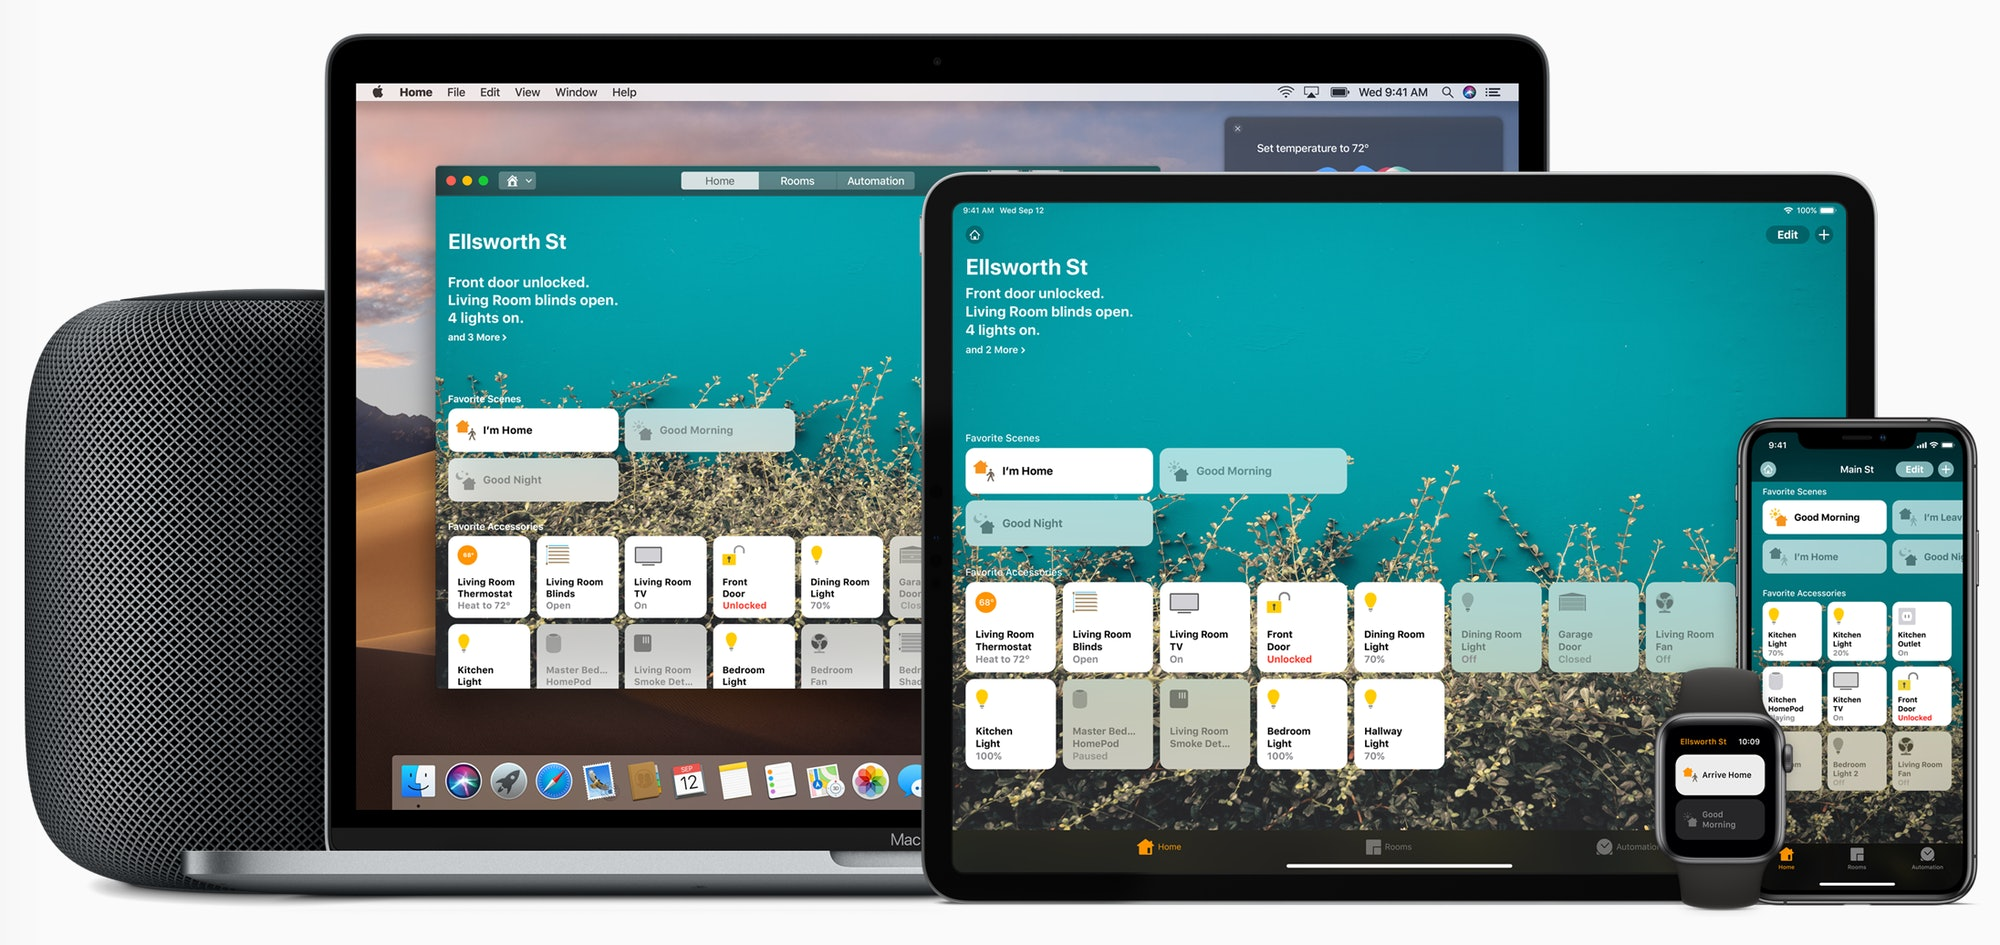 Apple's HomeKit ecosystem laid out.